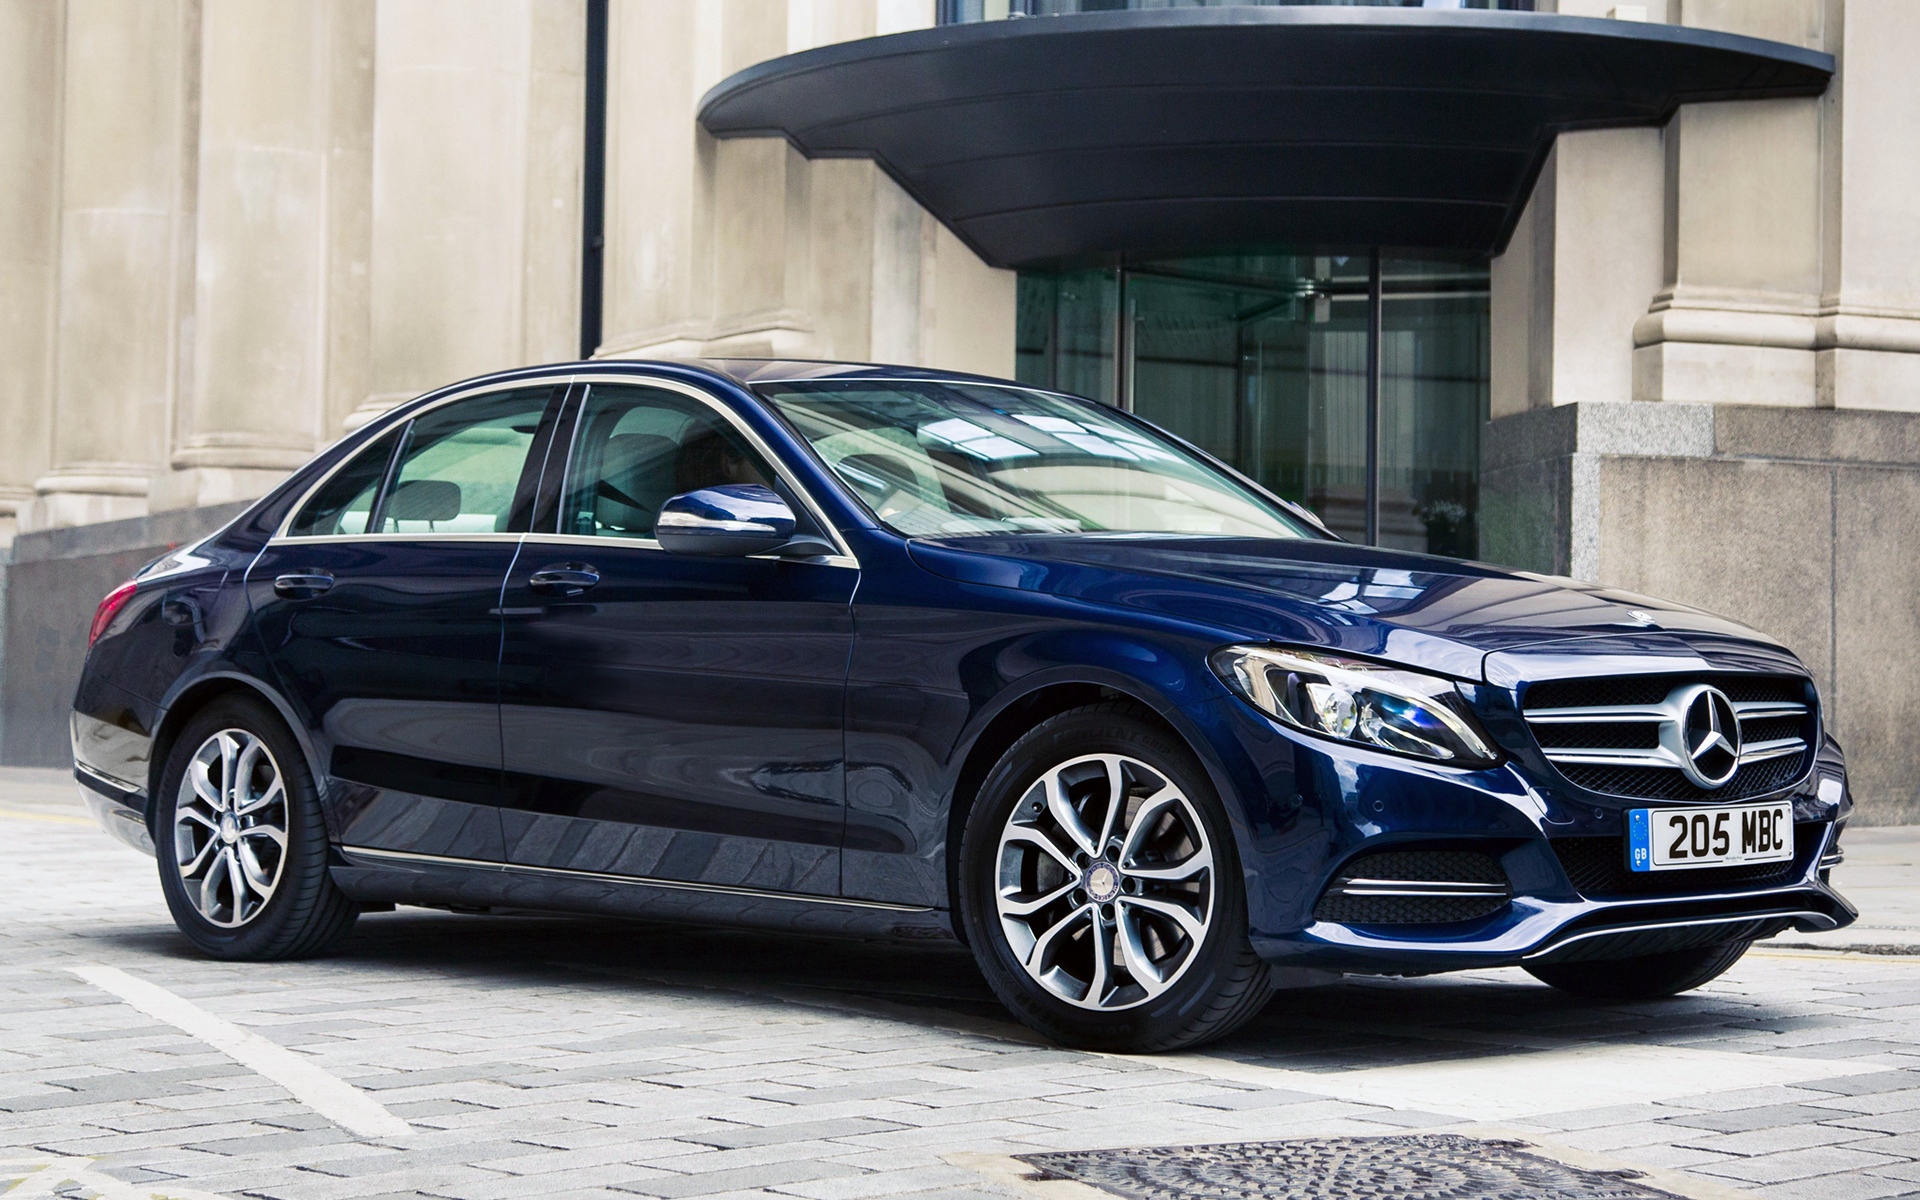 2014 Mercedes-Benz C-Class (UK) - Wallpapers and HD Images ...